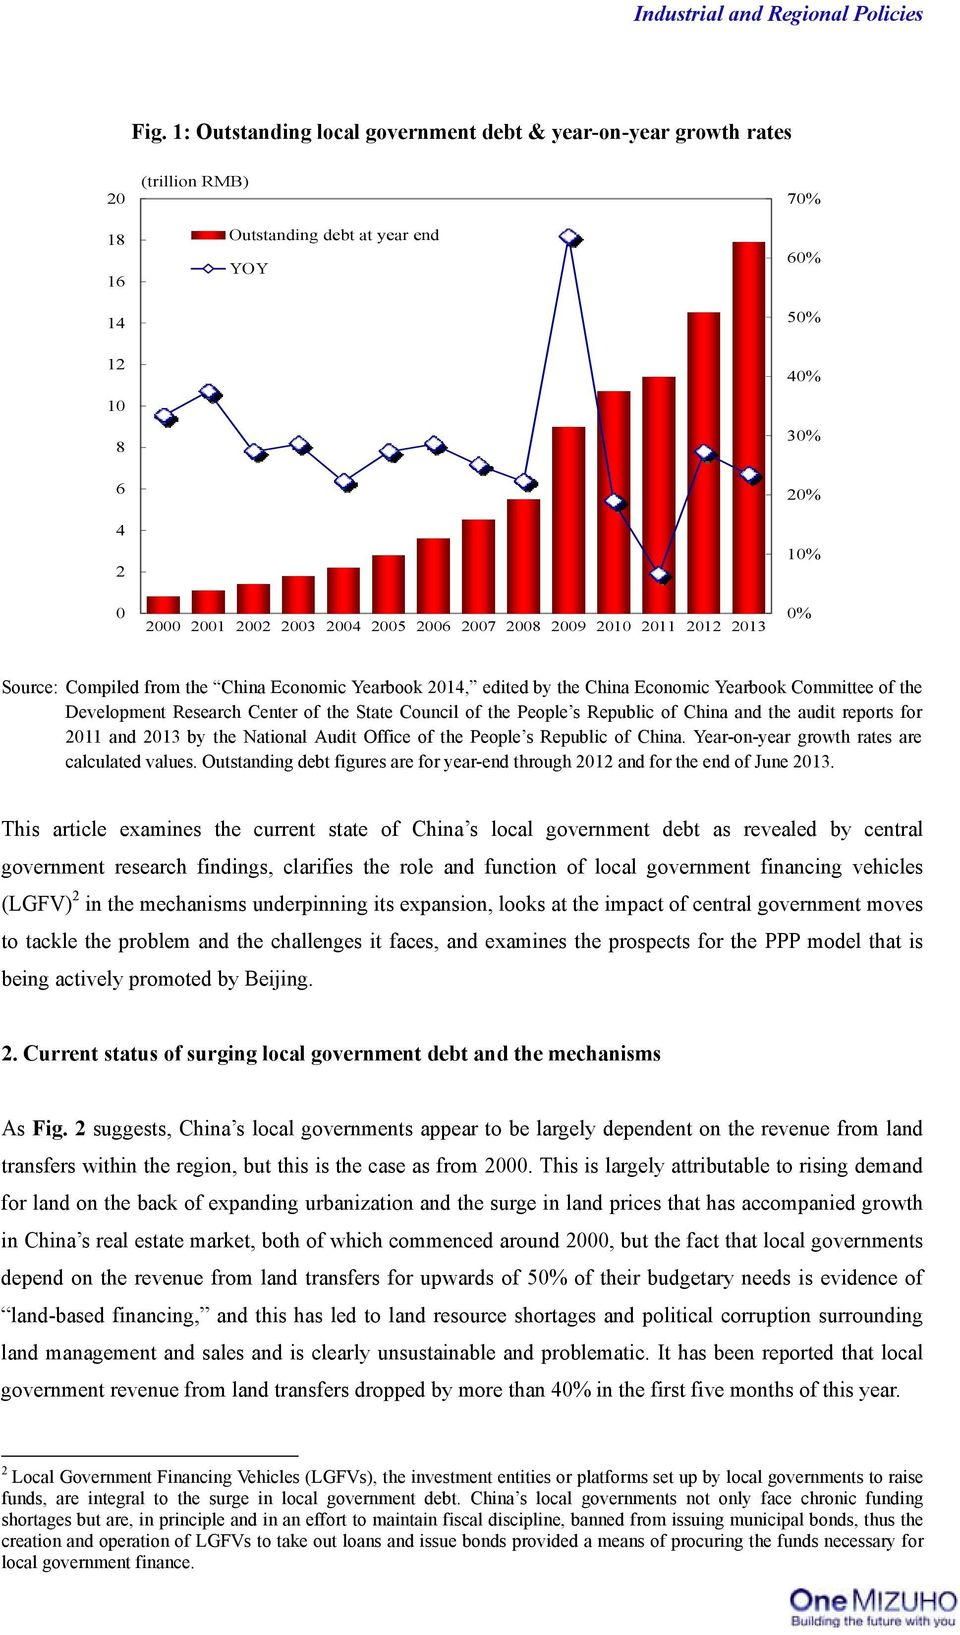 China and the audit reports for 211 and 213 by the National Audit Office of the People s Republic of China. Year-on-year growth rates are calculated values.